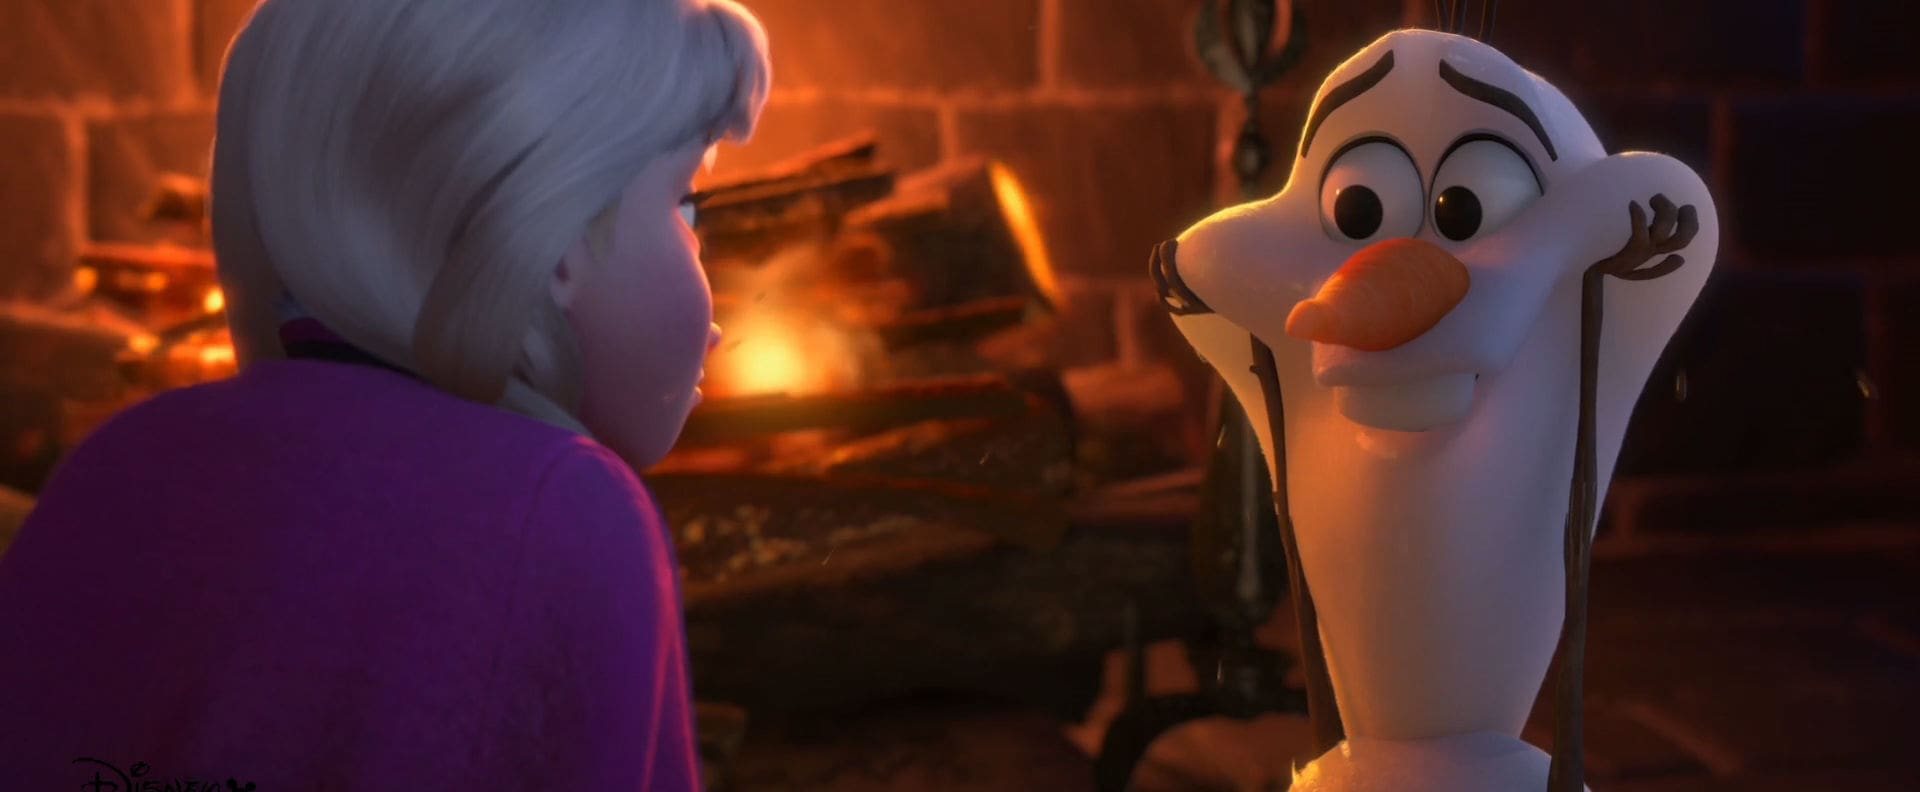 Disney's Olaf-a-Lots - Unlocking Relationships